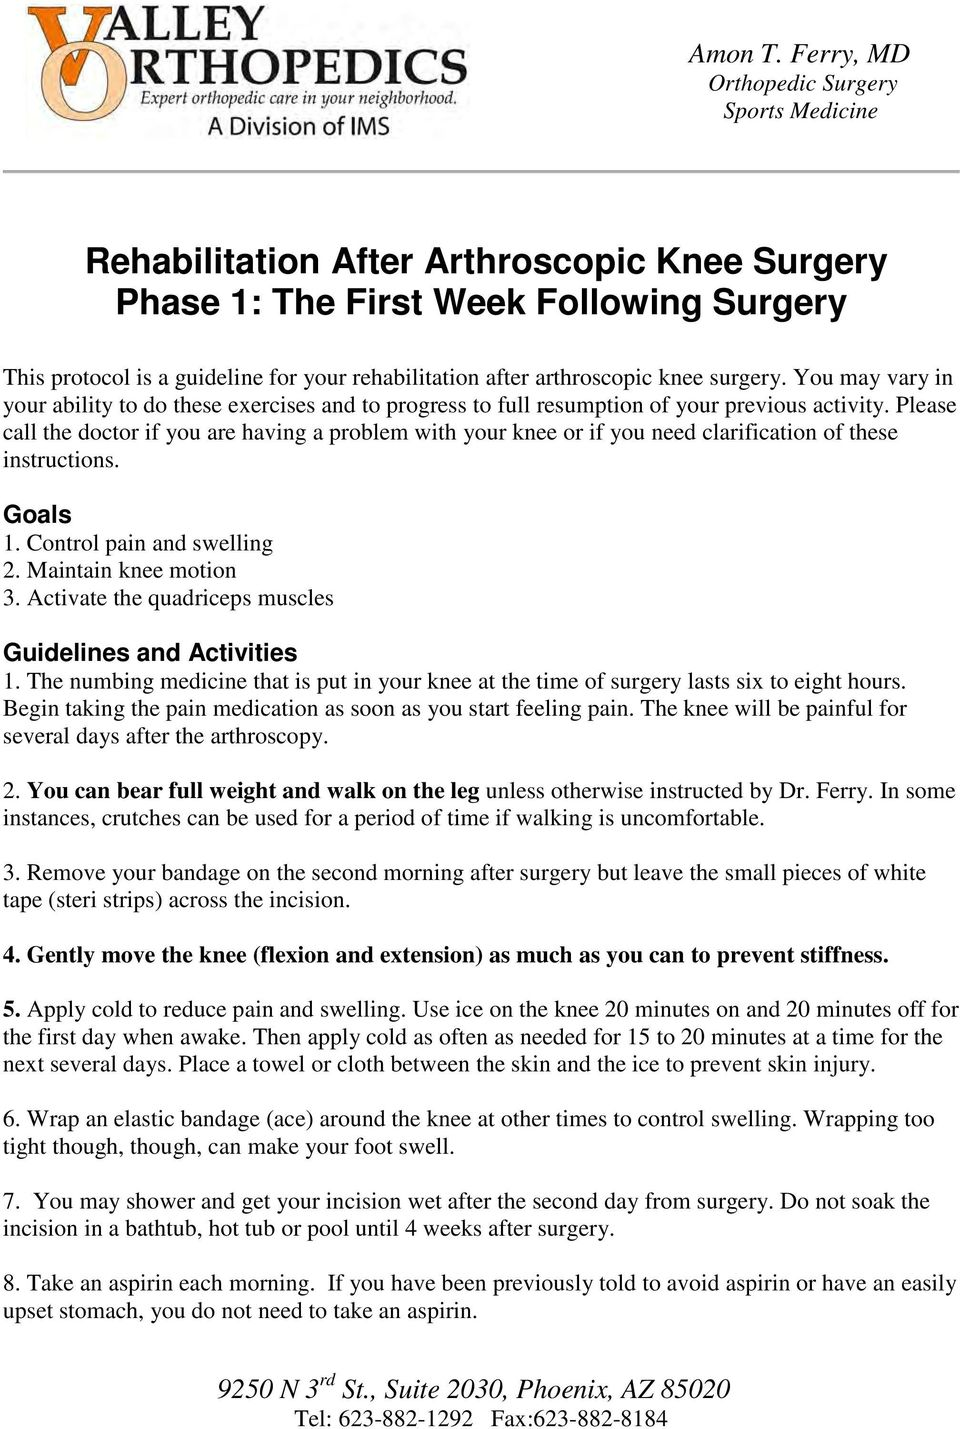 arthroscopic knee surgery. You may vary in your ability to do these exercises and to progress to full resumption of your previous activity.